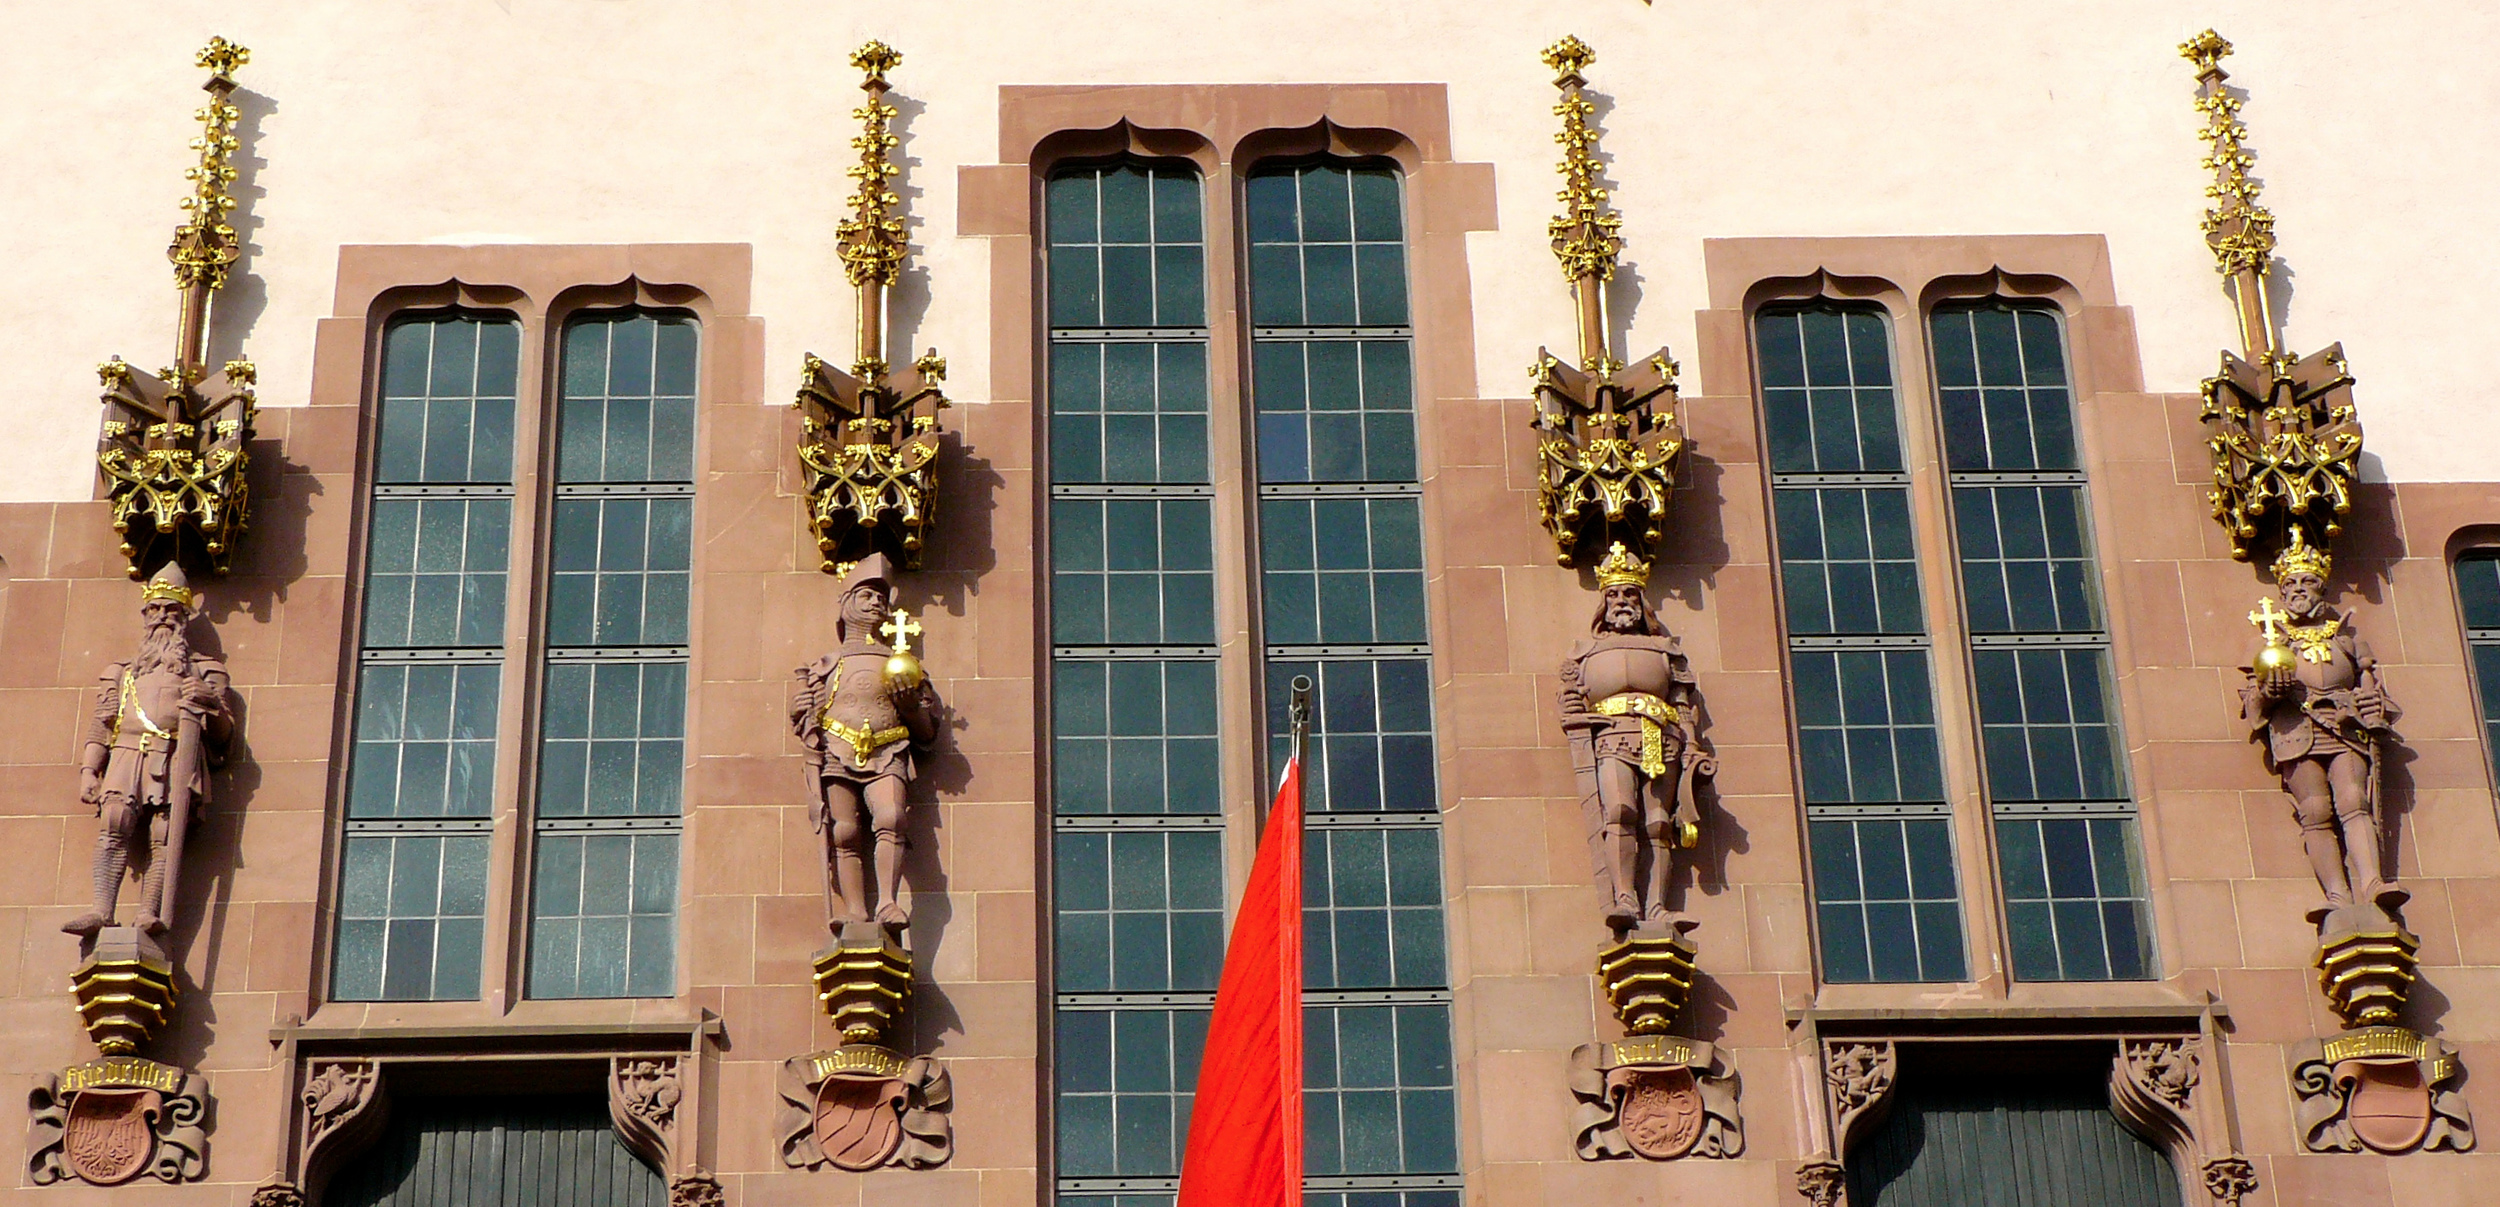 Facade details showing (left to right):Friedrich Barbarossa, Ludwig I, Karl III, and Maximilian